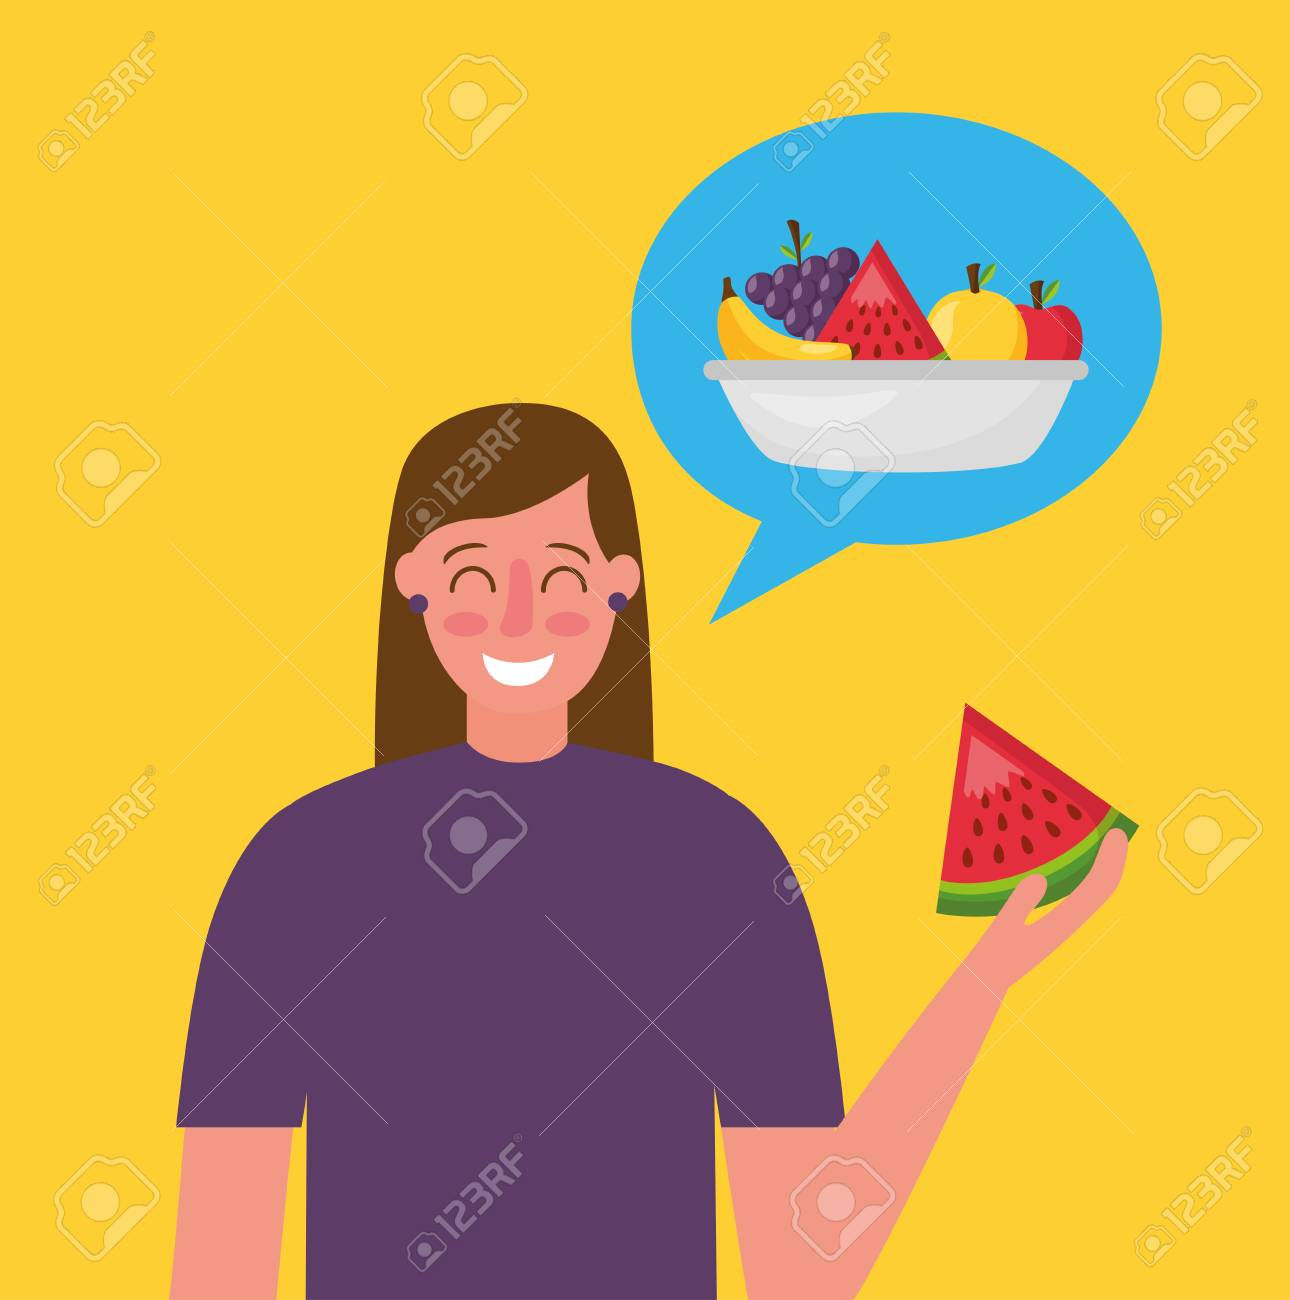 woman holding watermelon thinking healthy food vector illustration - 126819963